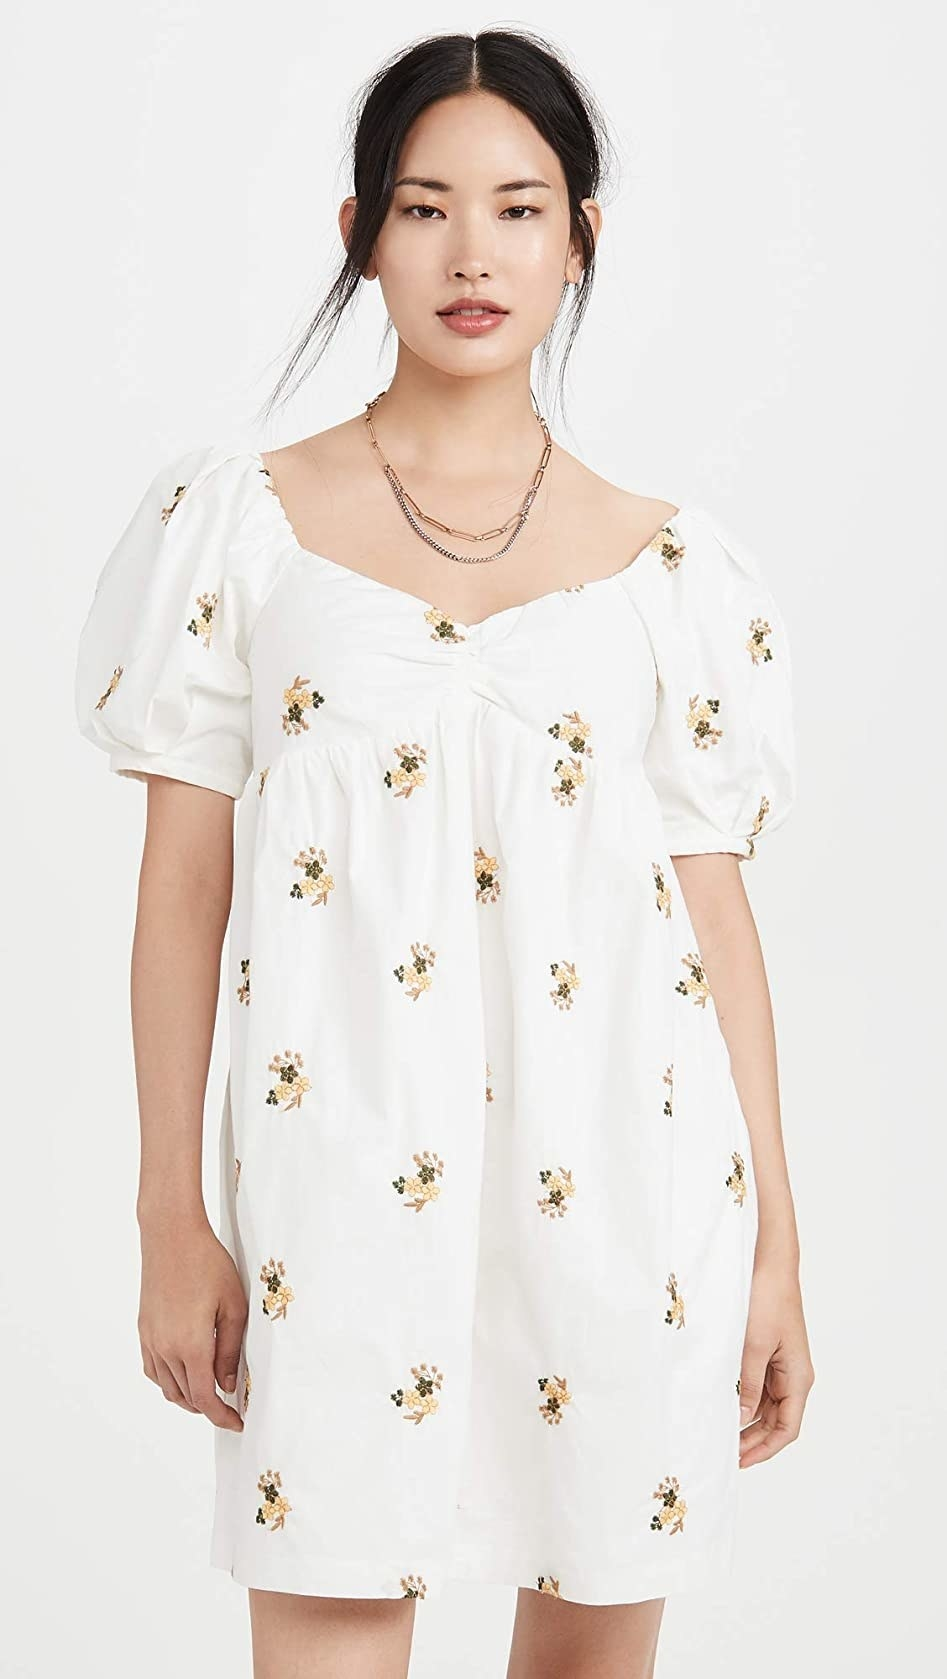 The white and yellow floral dress with puffed short sleeves